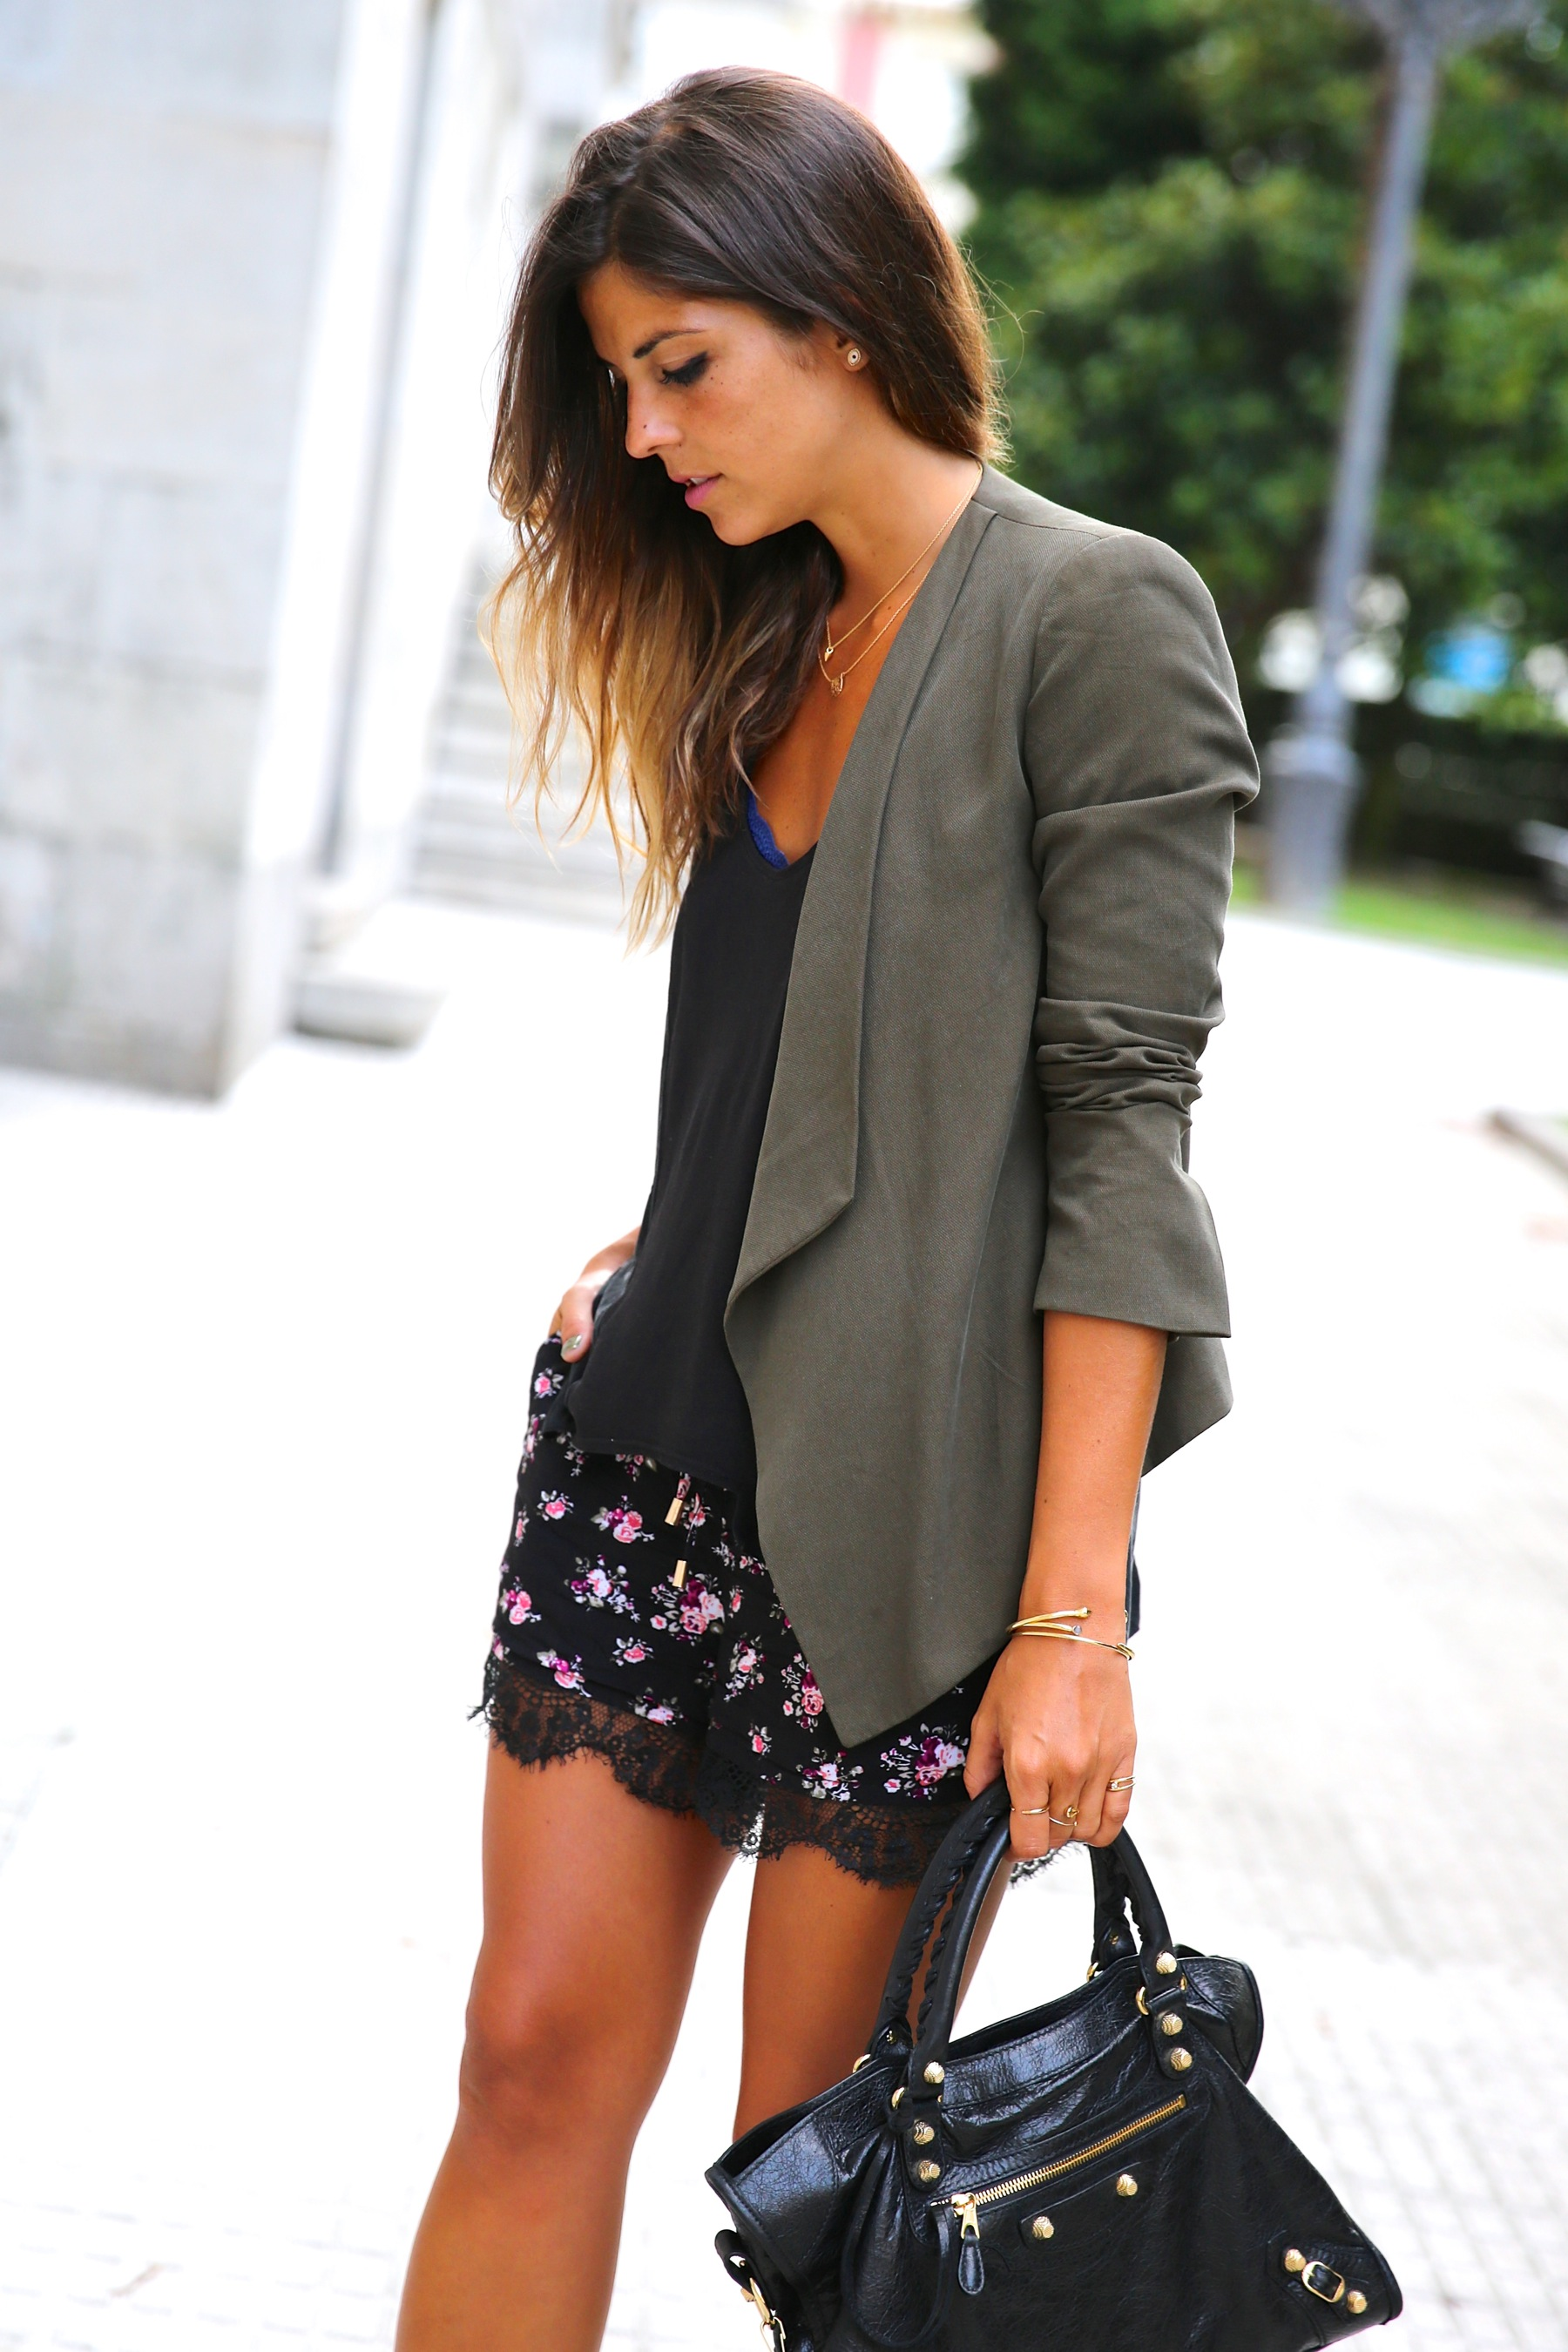 1545fcec5e9a Natalia Cabezas is wearing a pair of floral print shorts from Vila  Buyleward